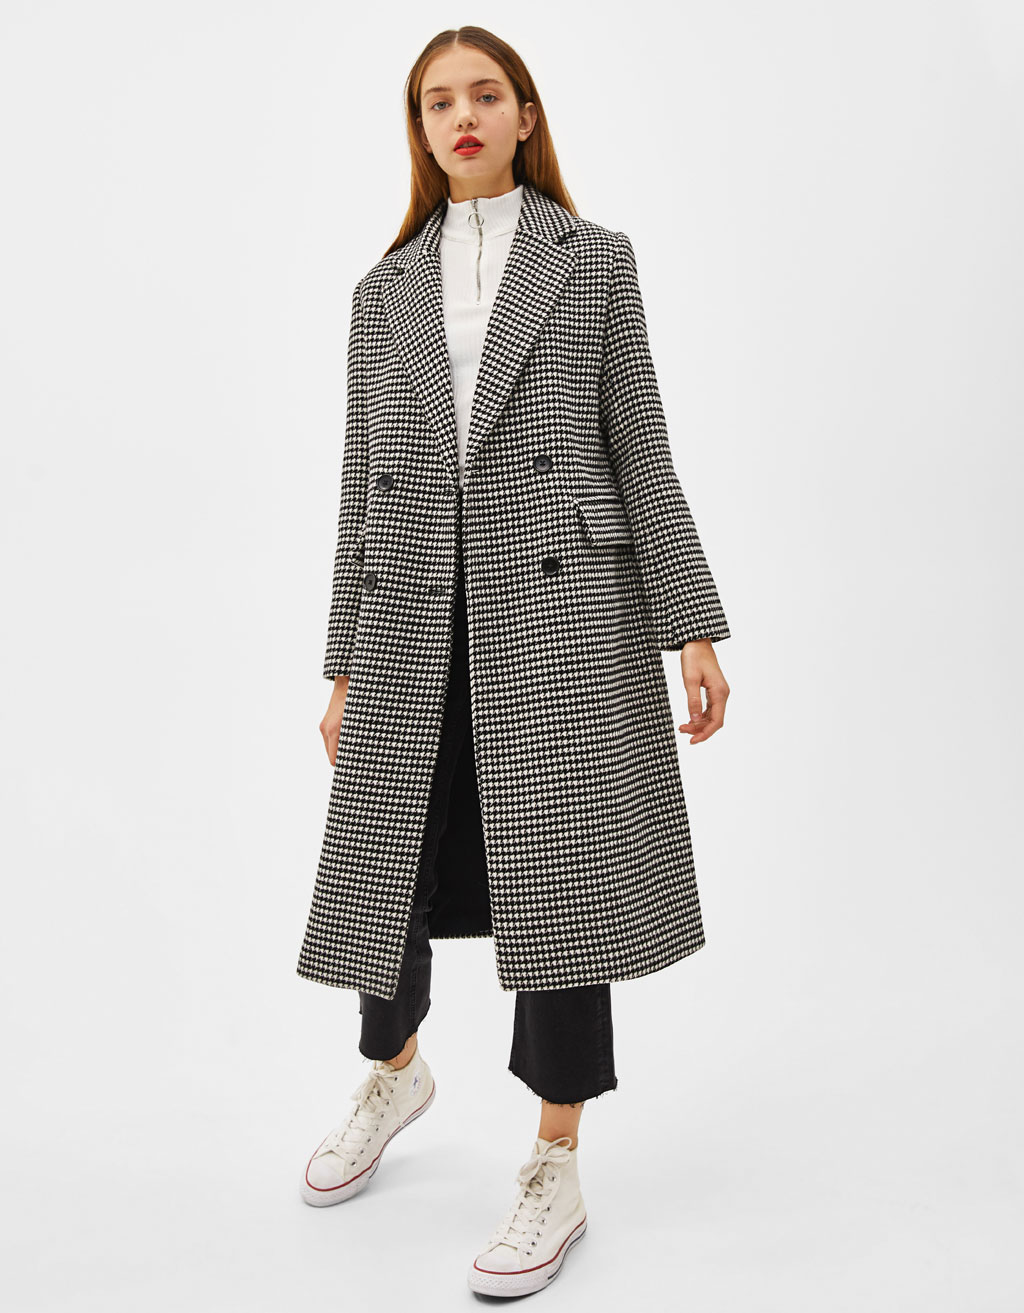 8.  Berhska Long Houndstooth Coat  - $119